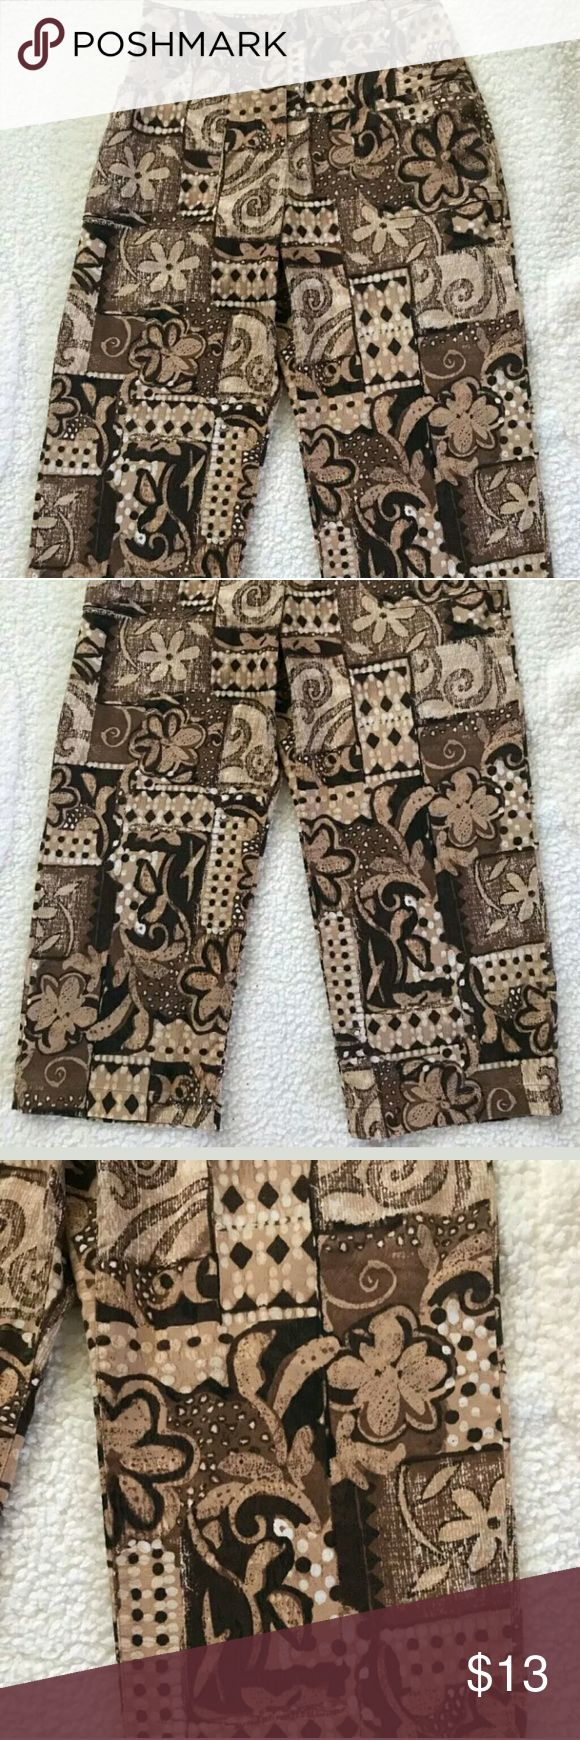 Chico's Capri Pants Chico's Women's Capris Cropped Pants Brown Size 0 Printed Flowers Stretch Pocket   ChicoWomen'sBrownFlower PrintPocketsSize 0Capri/Crop  These Chico capri pants are in very good used condition.  The pants are free of holes and stains.    Thank you! Chico's Pants Capris